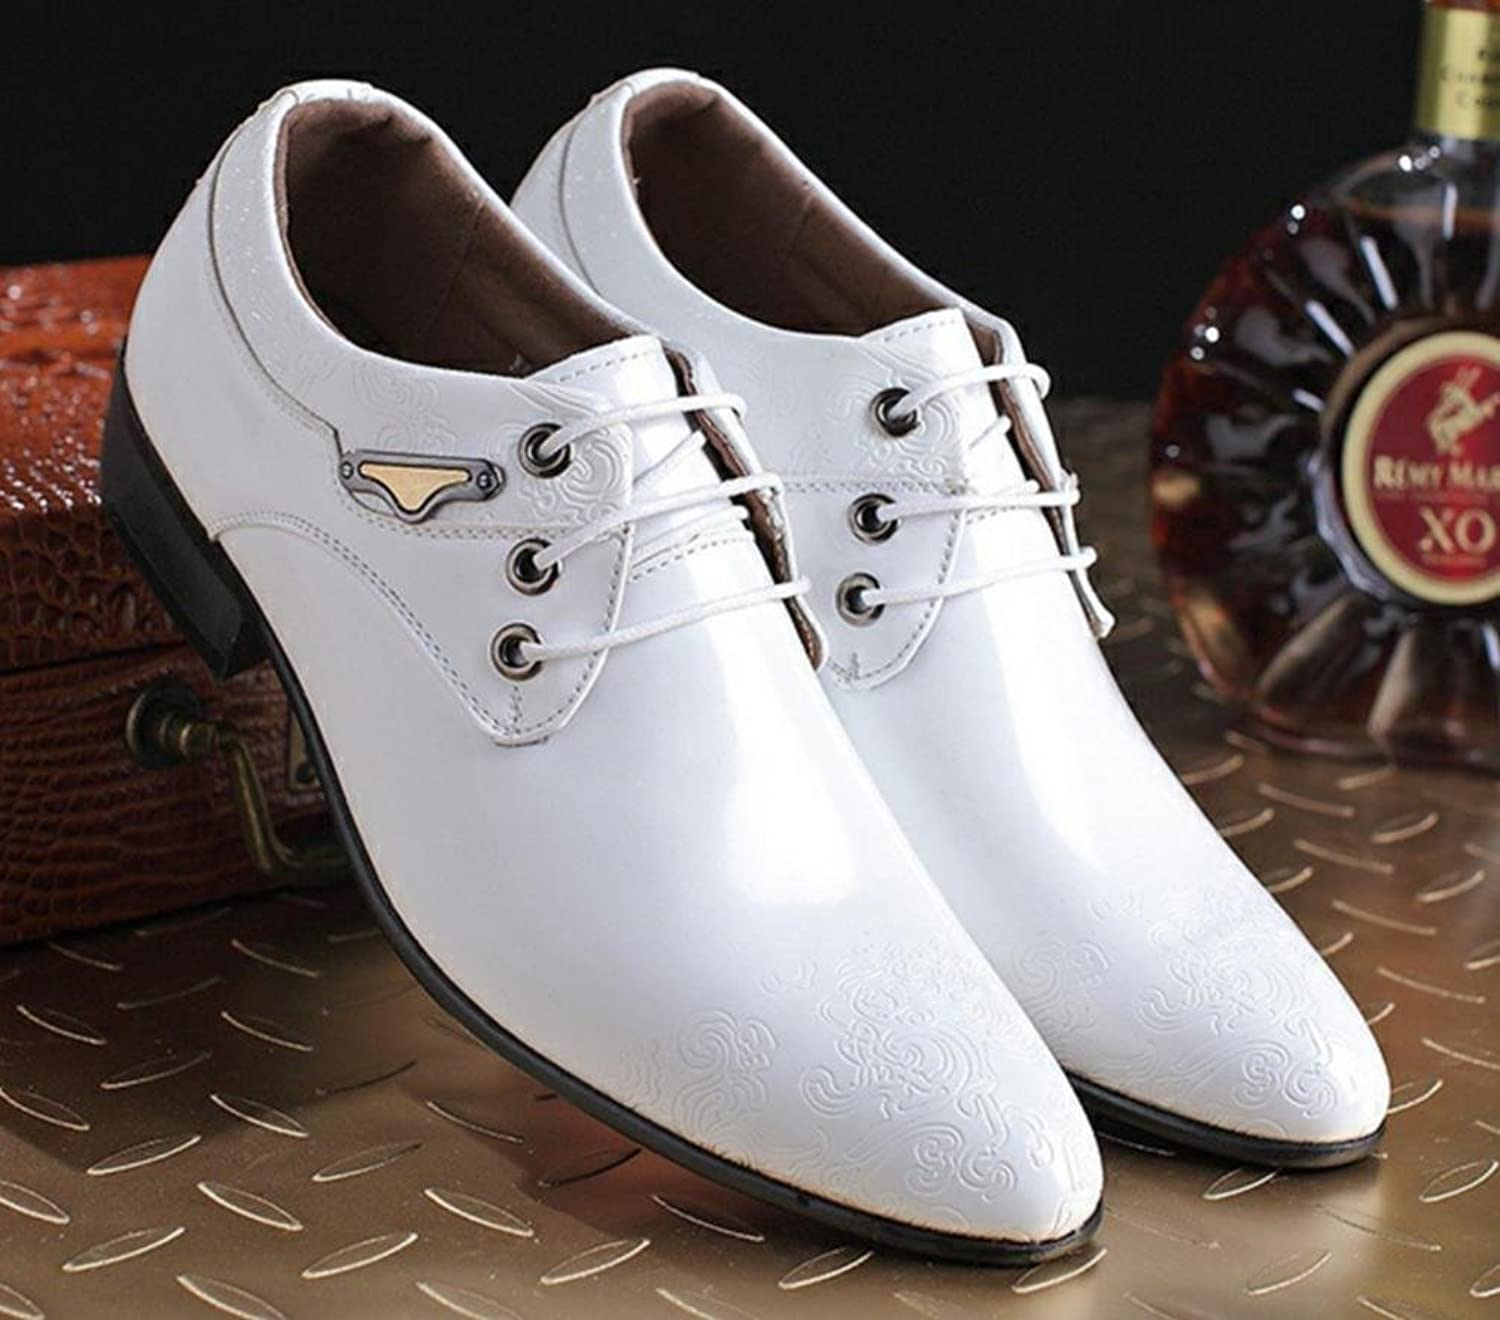 XWZG Men'S Business Casual shoes Fashion Printing Decoration Patent Leather Lace Suit shoes White-Collar Office shoes Wedding Party shoes